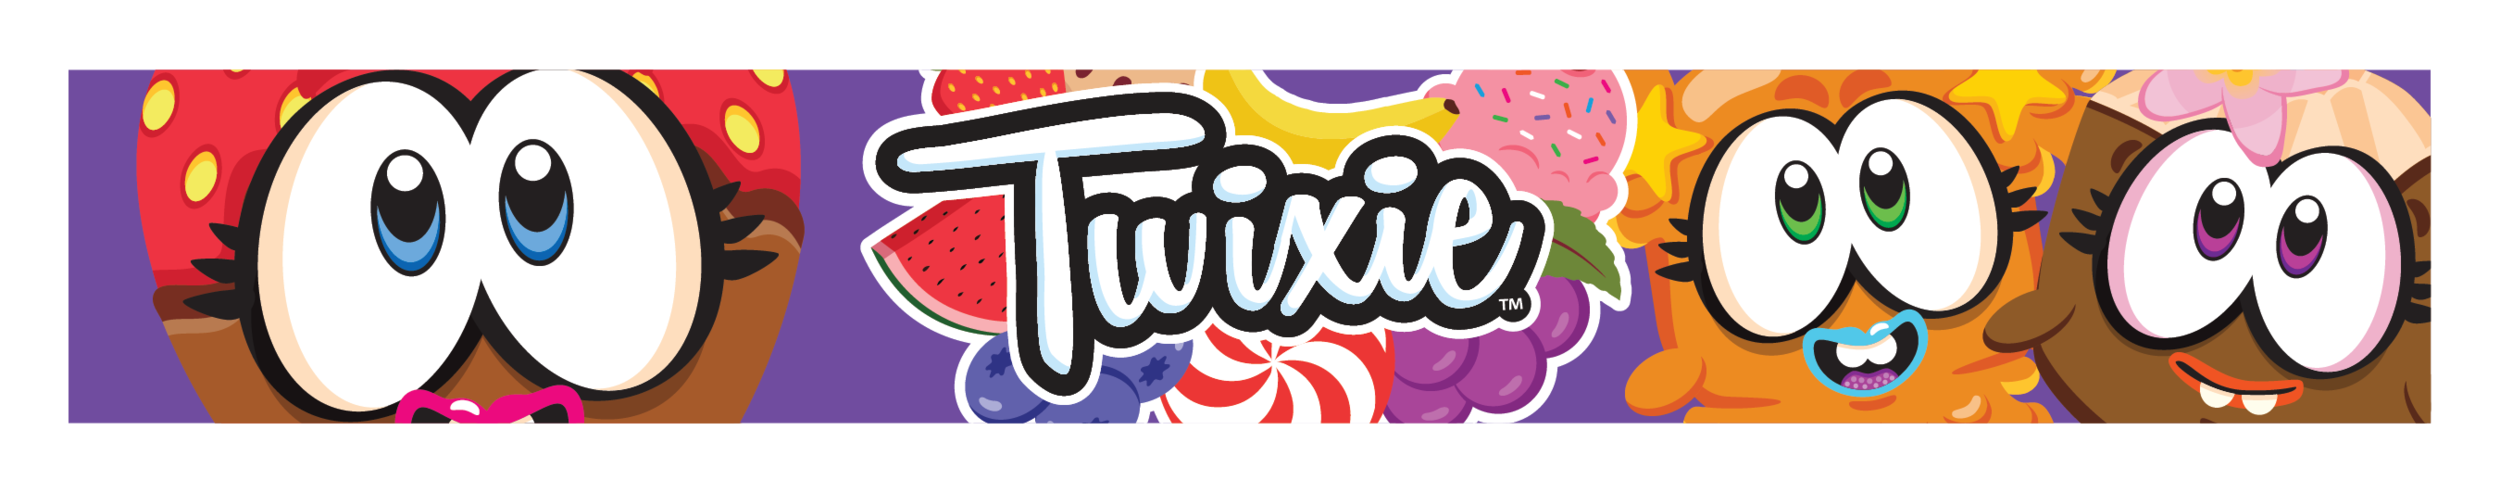 TWIXIE_FOOTER-01.png